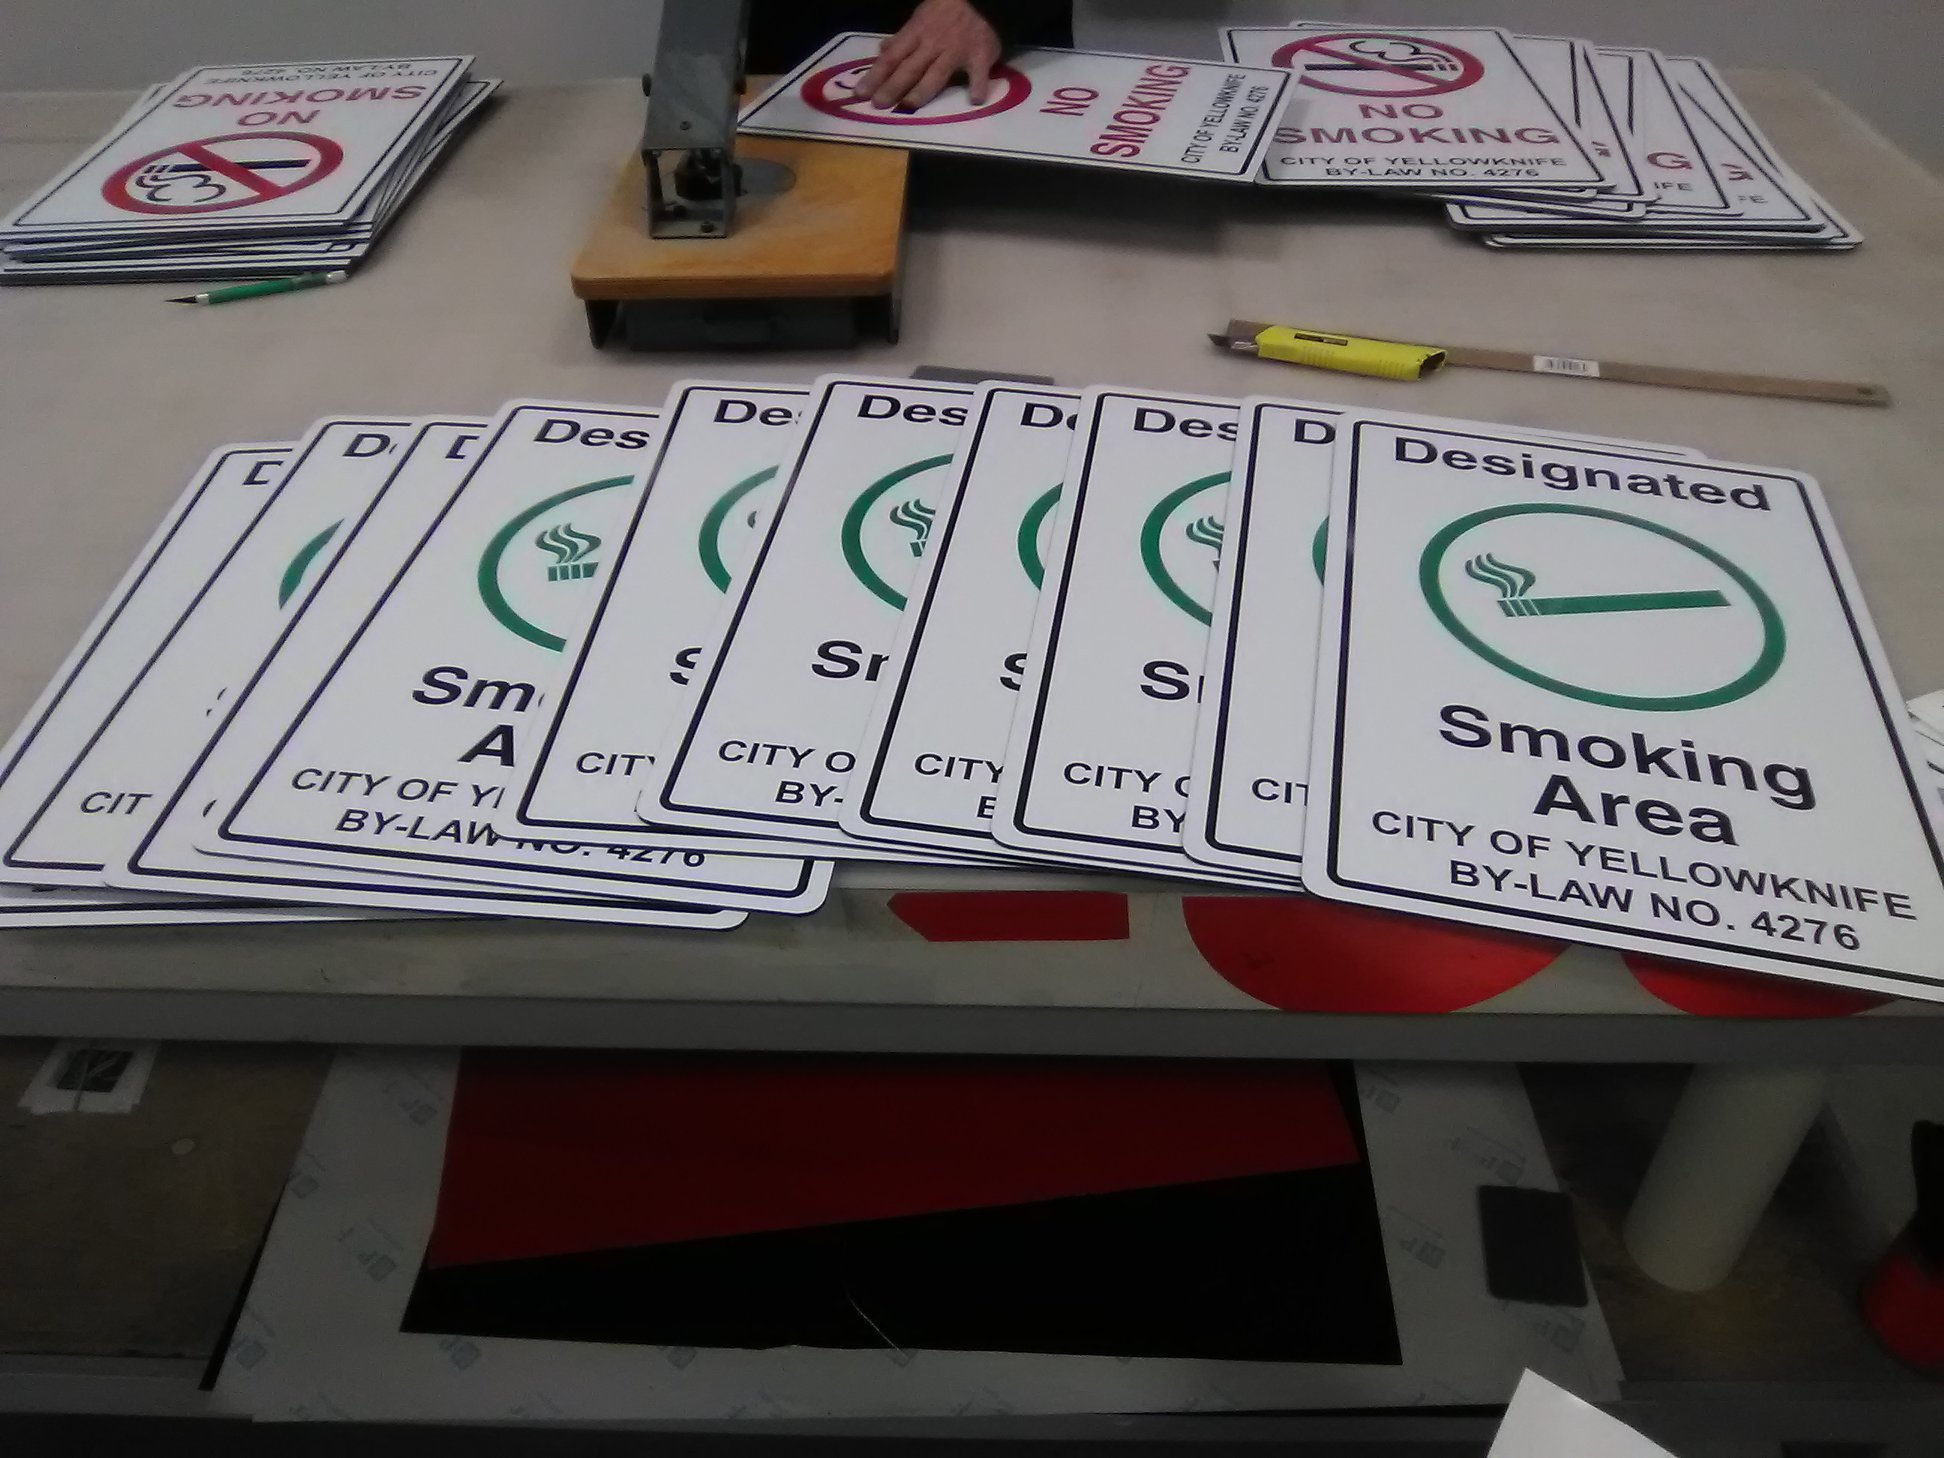 Exterior Signage for designated smoking and non-smoking areas.